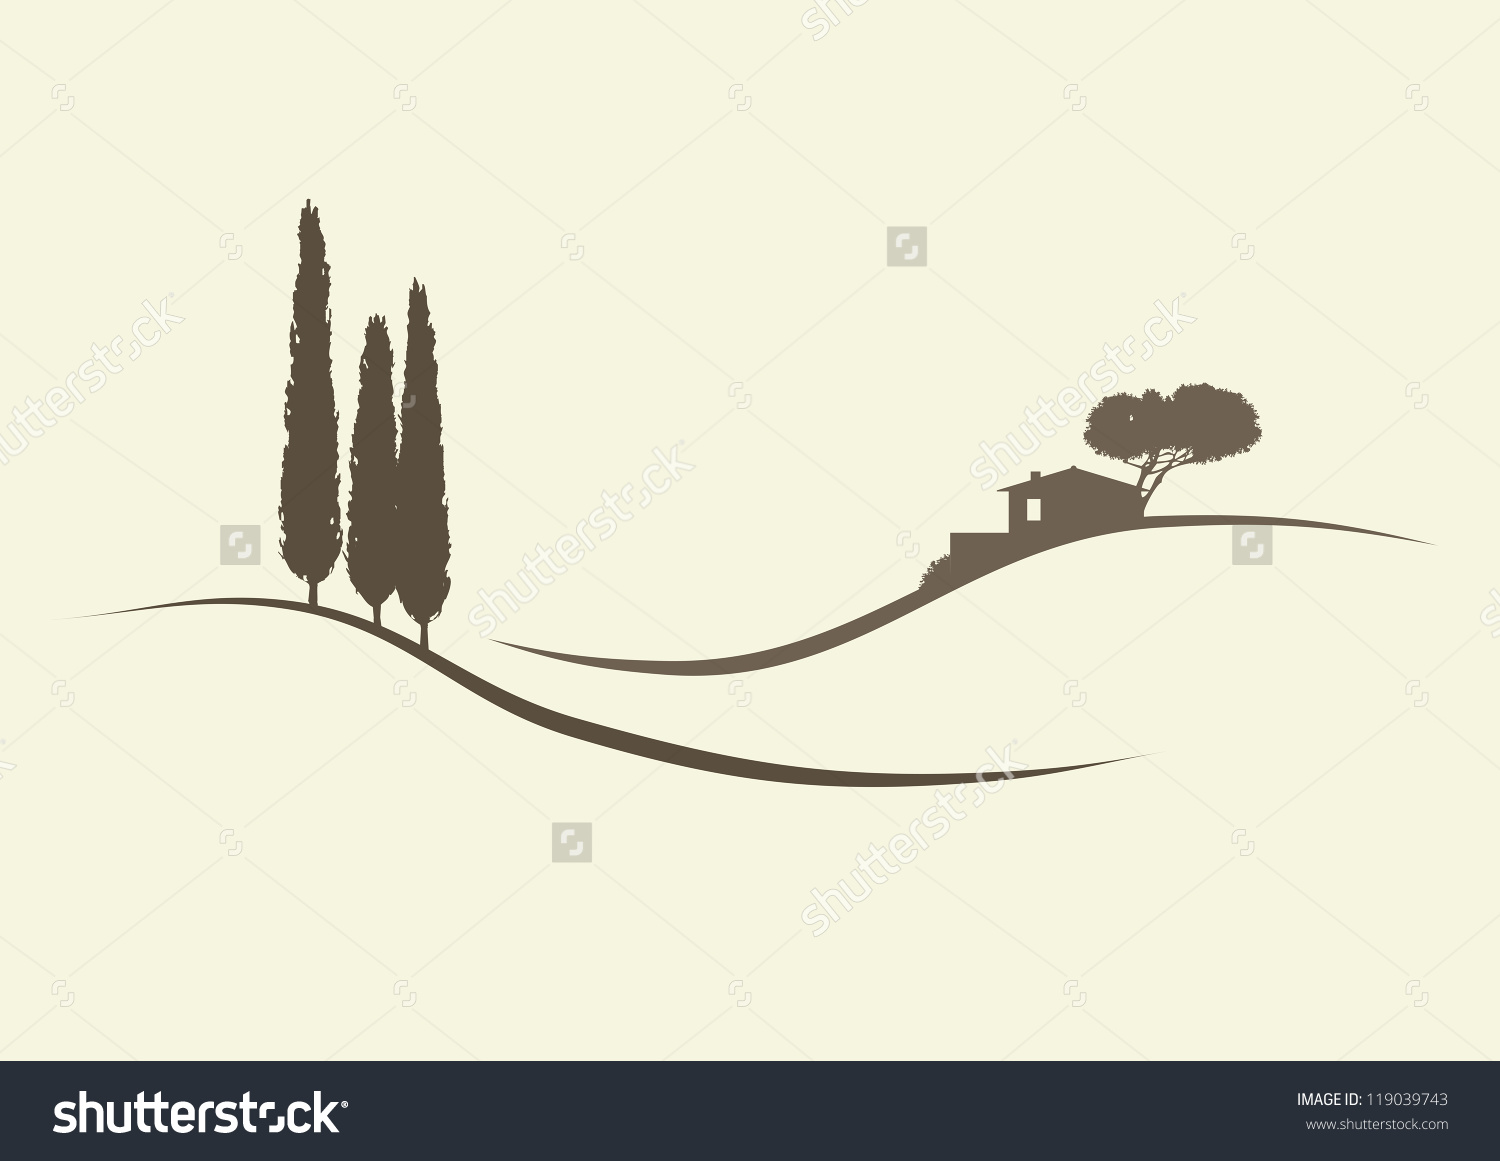 Tuscan cypress silhouette clipart.